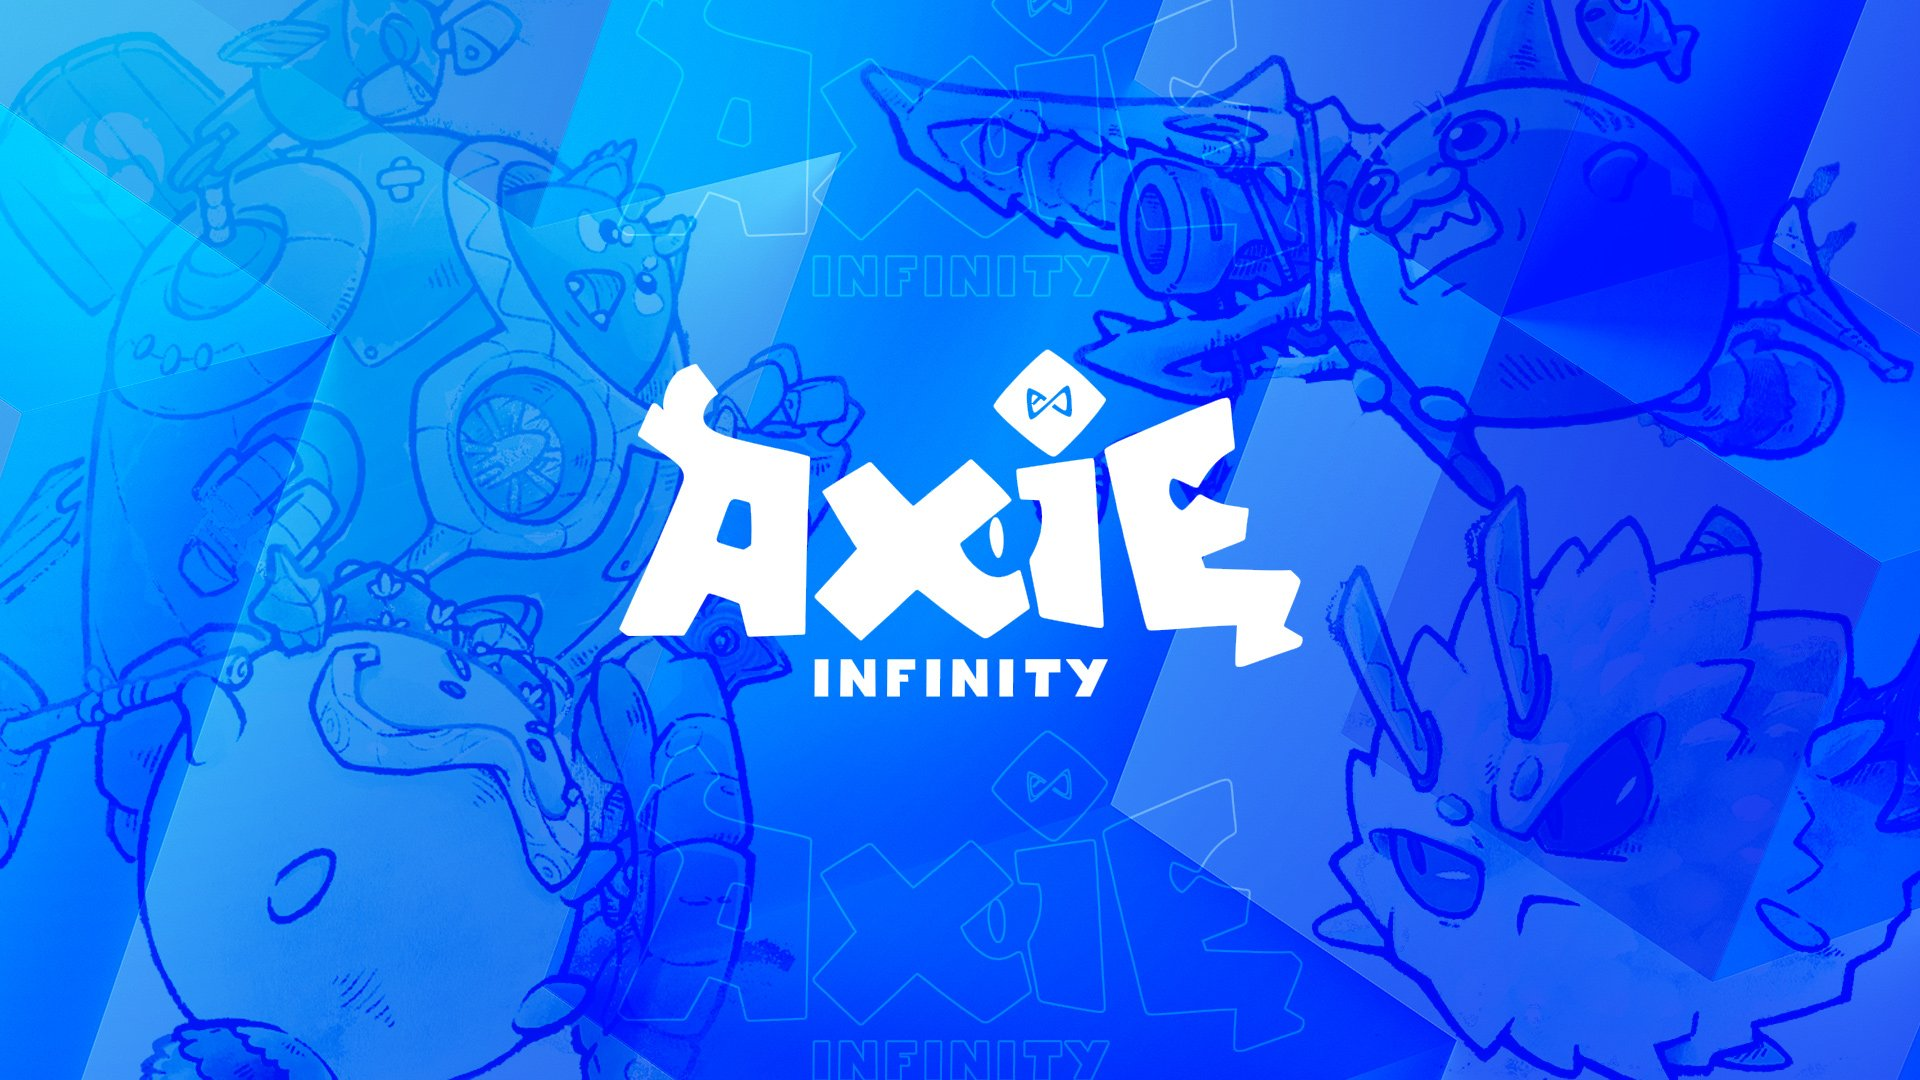 Axie Infinity overtakes NBA Top Shot in weekly NFT transactions